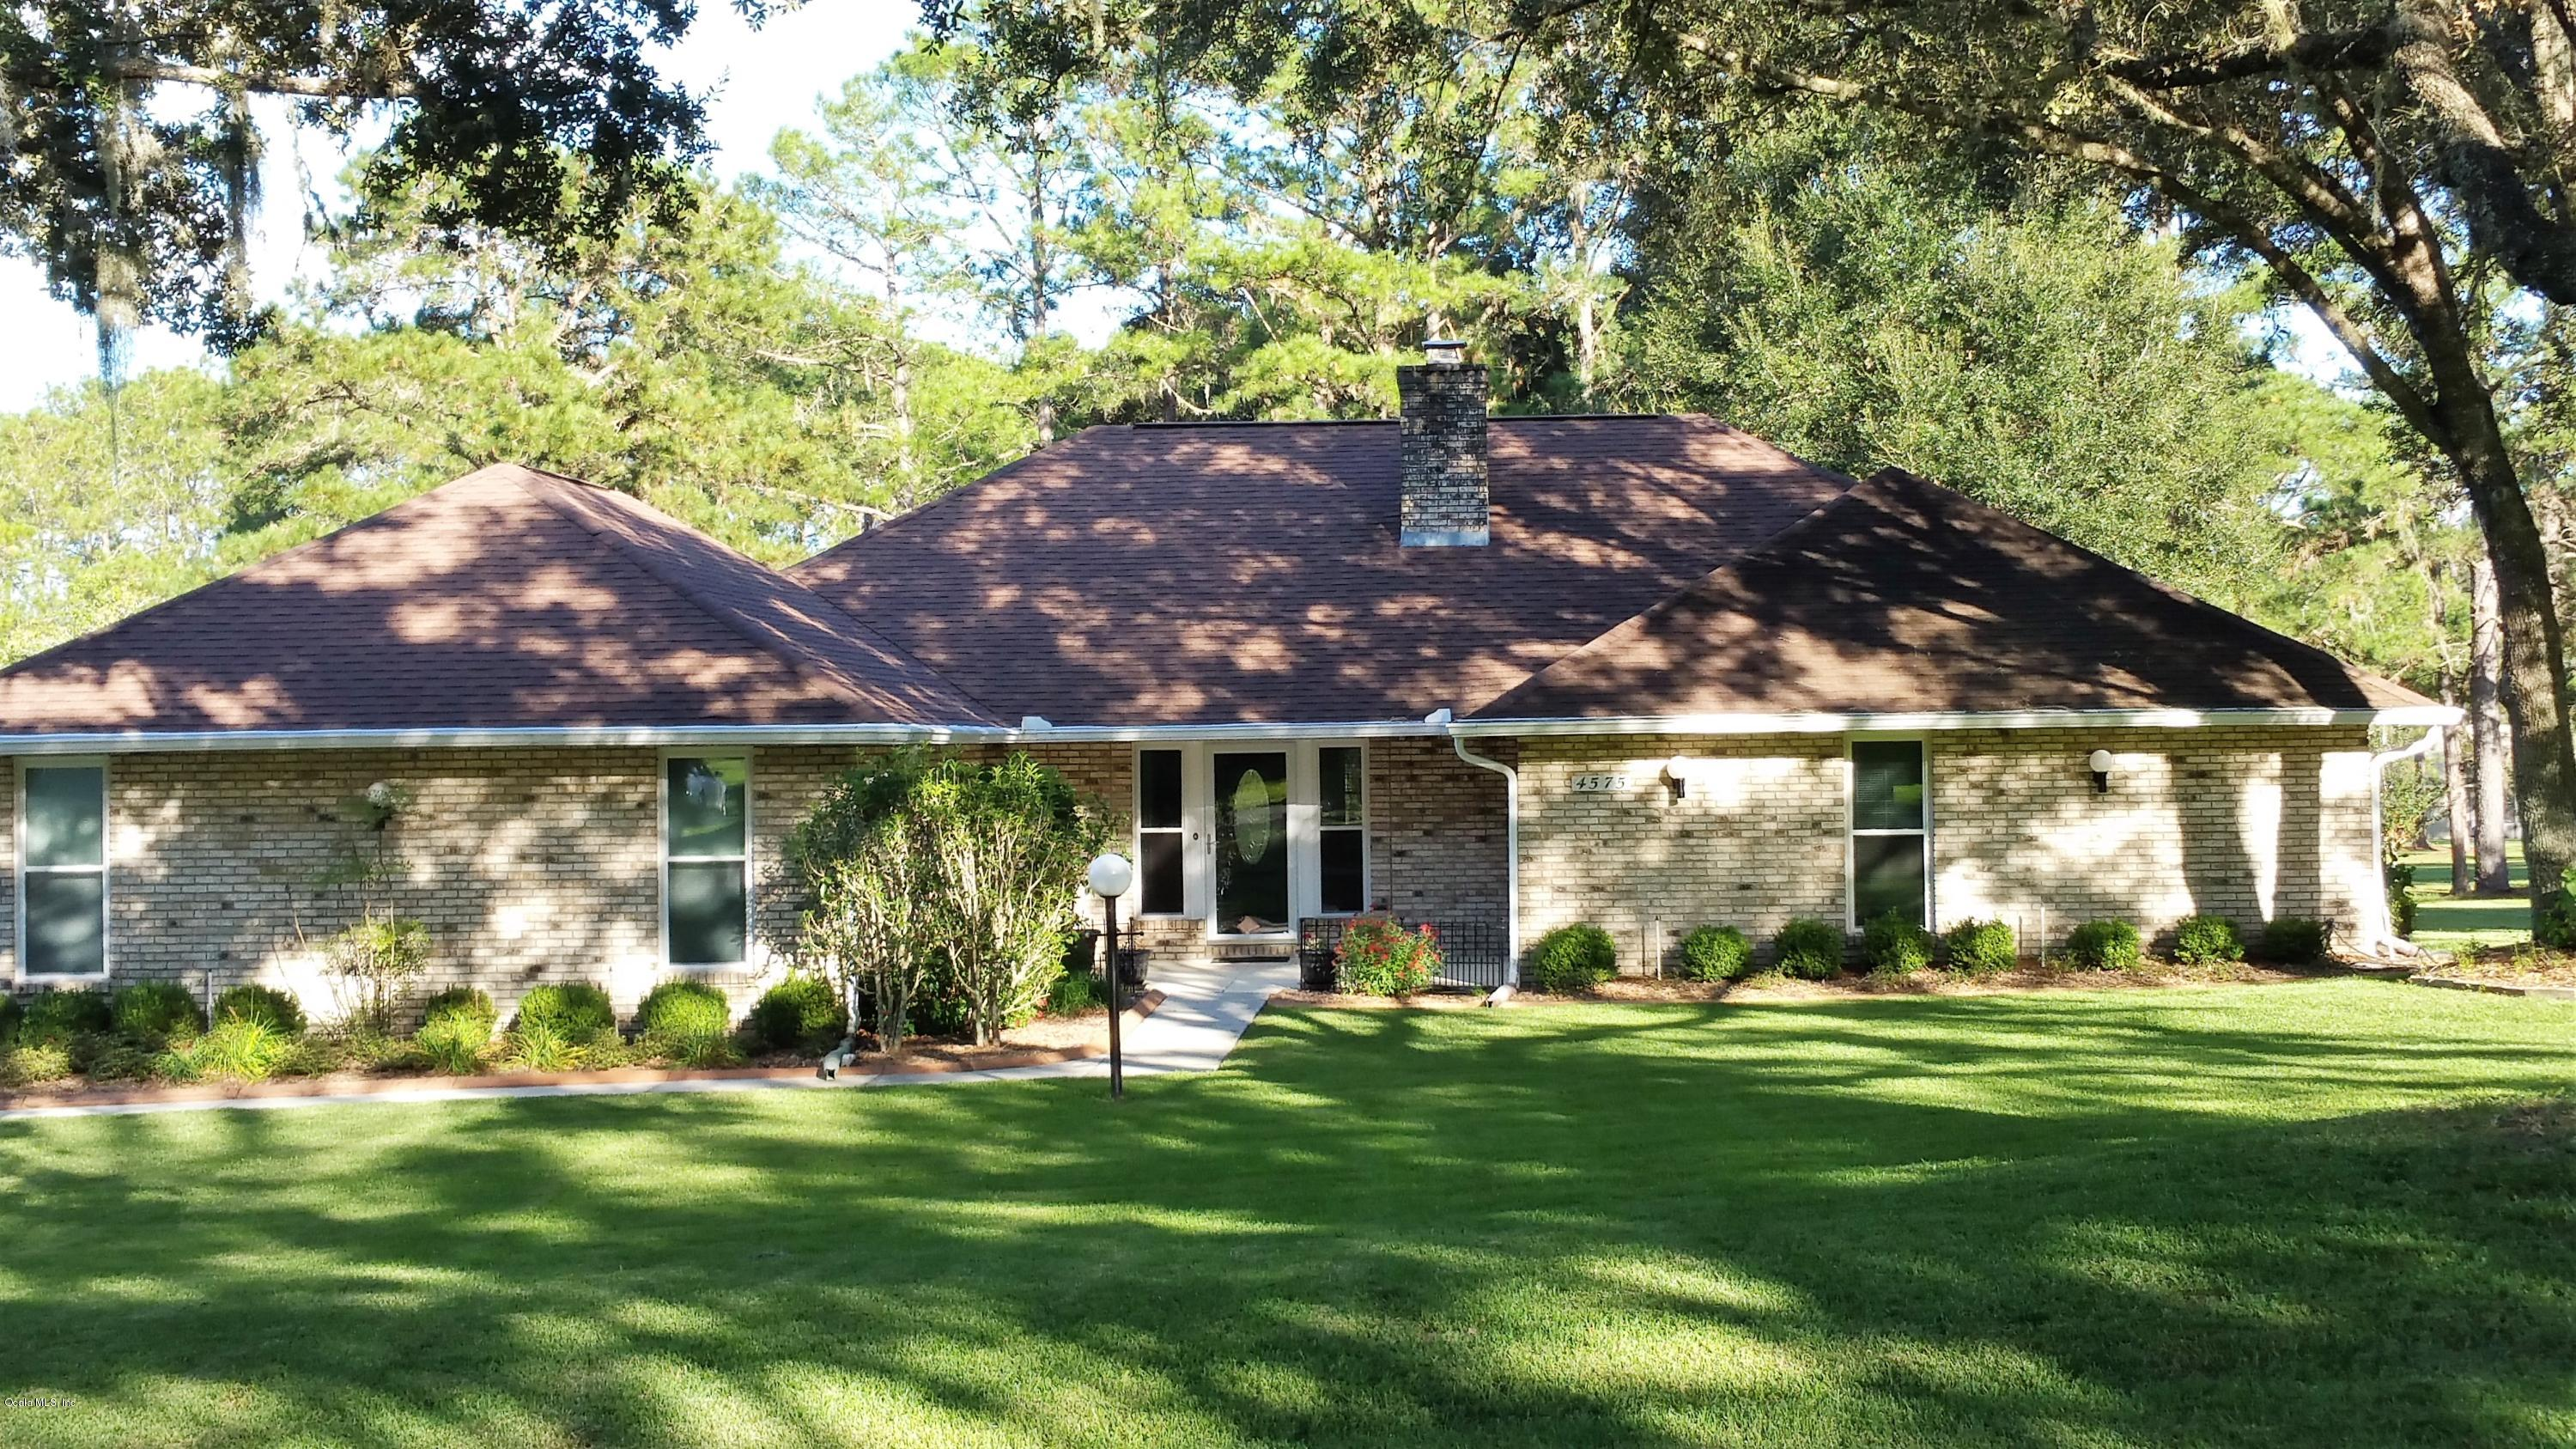 4575 NW 78TH AVENUE, OCALA, FL 34482